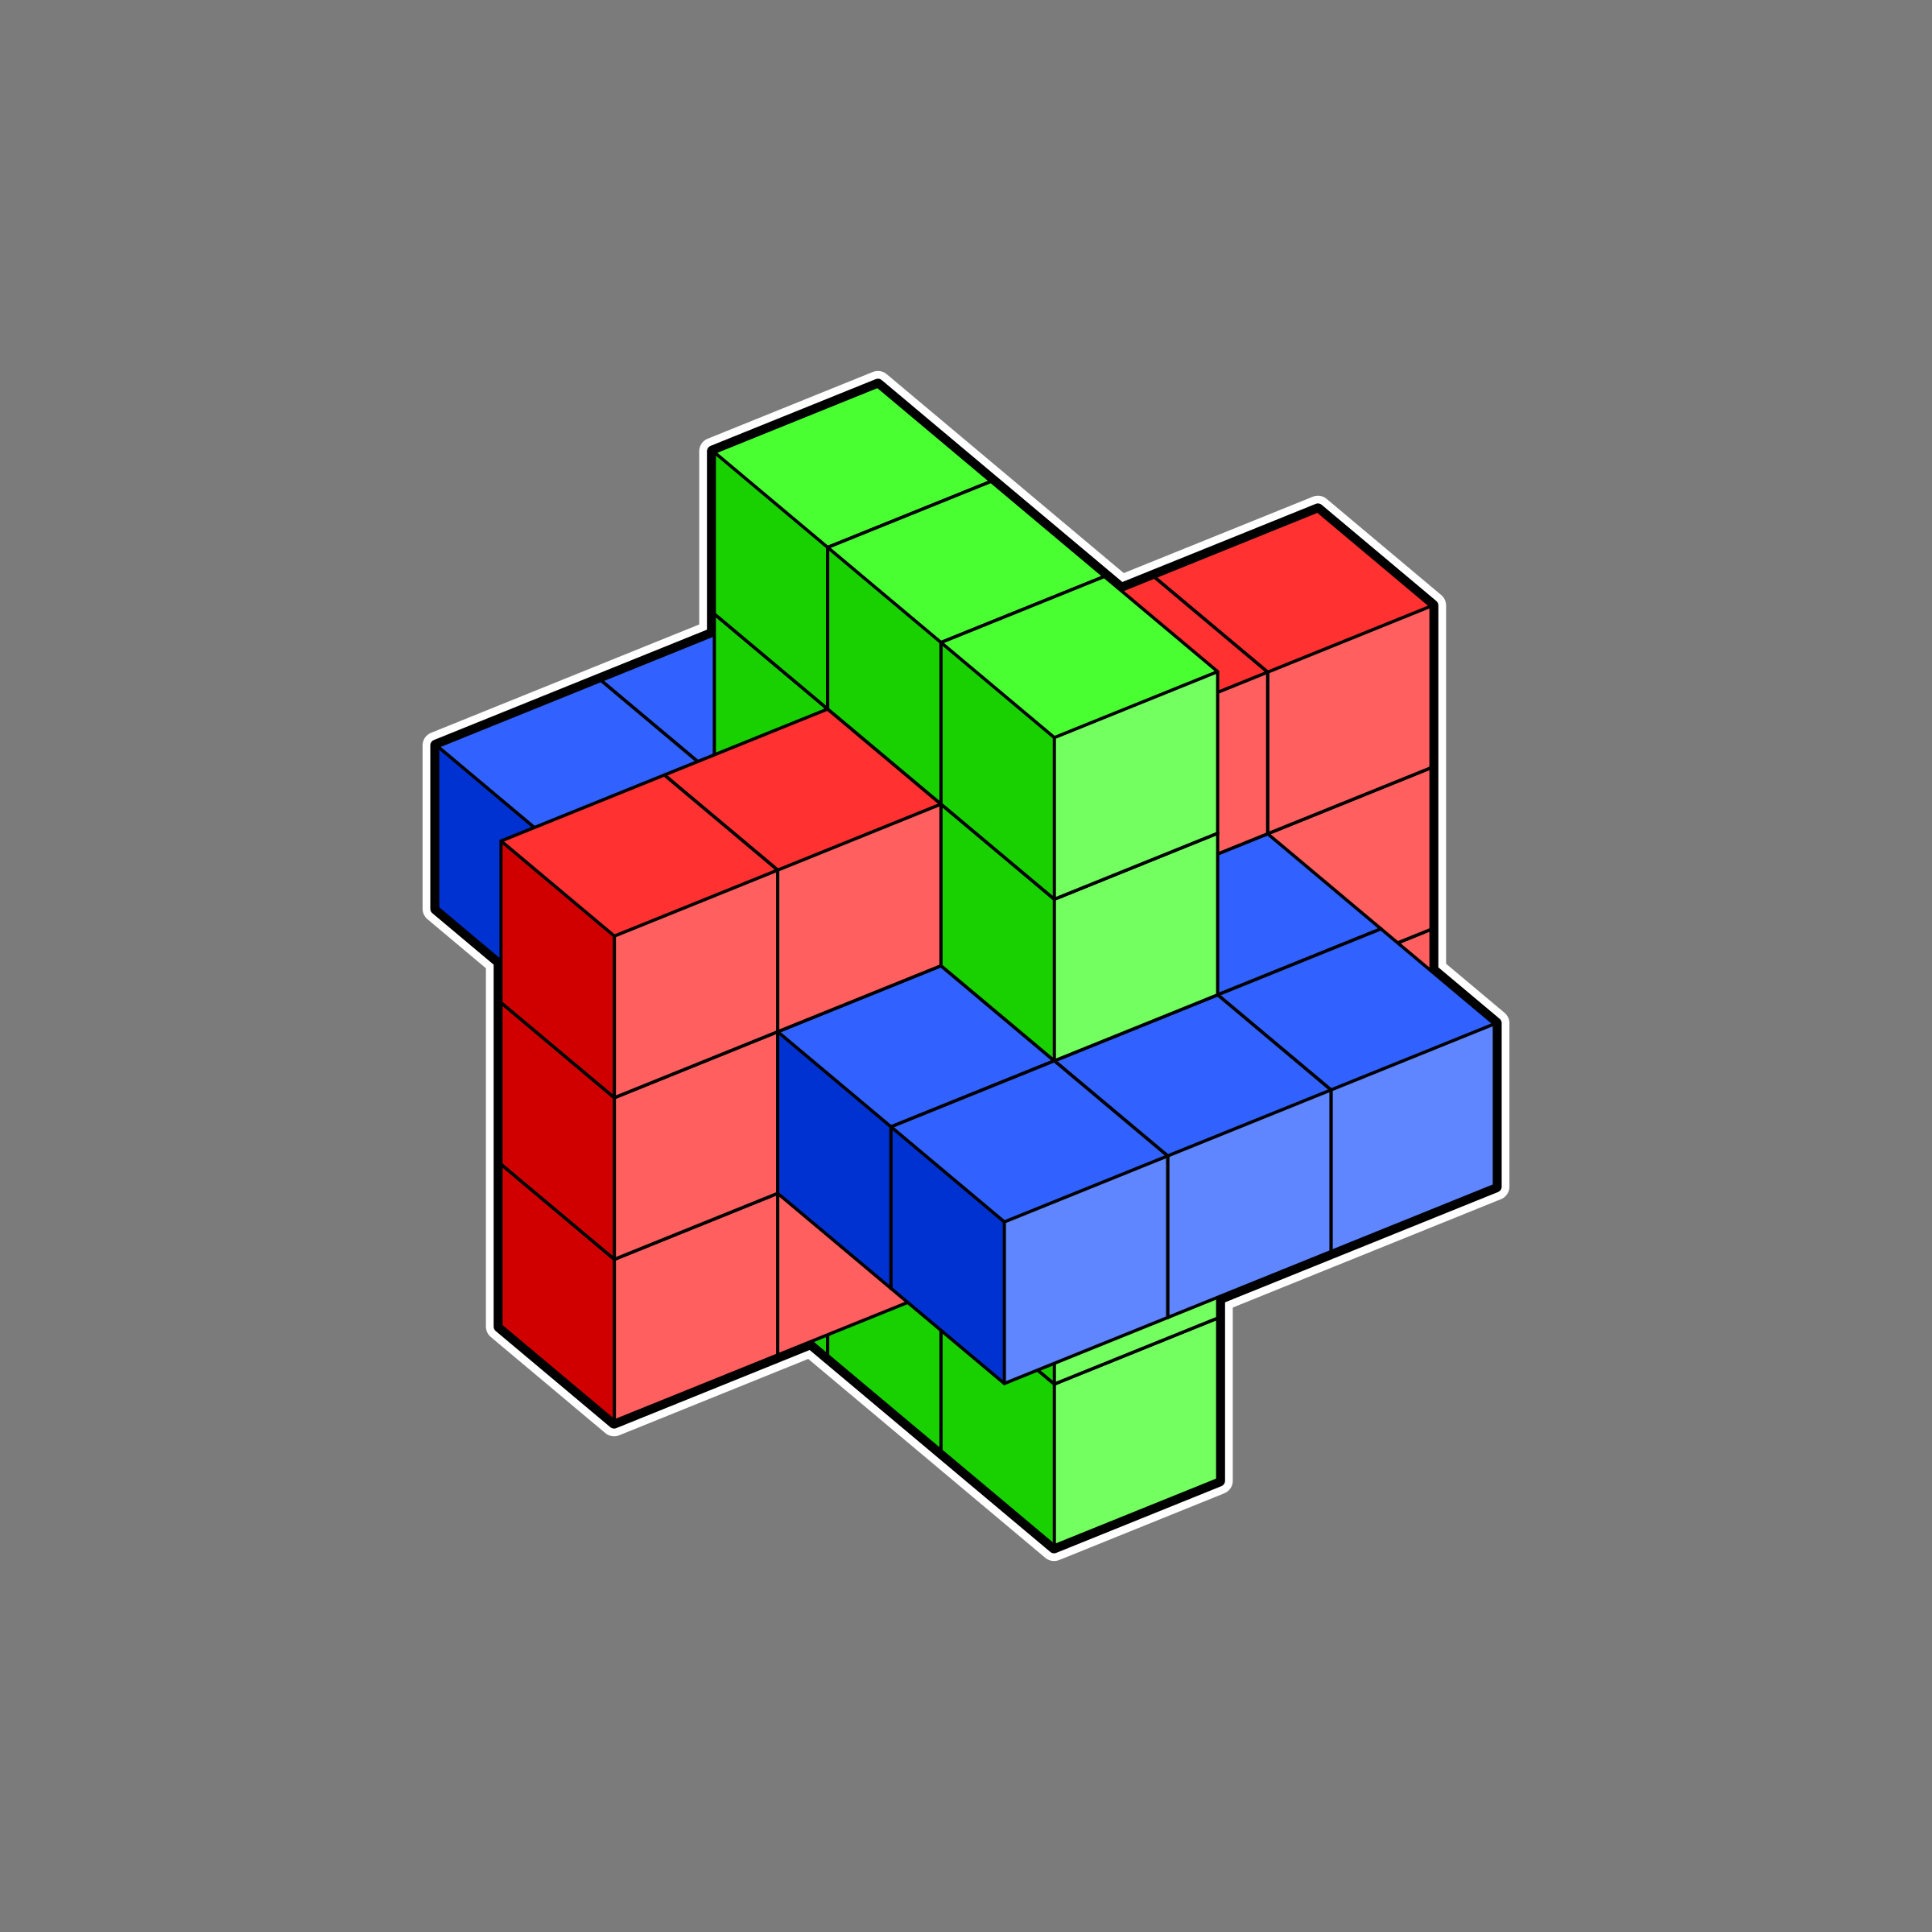 interlocking cubes by Lazur URH